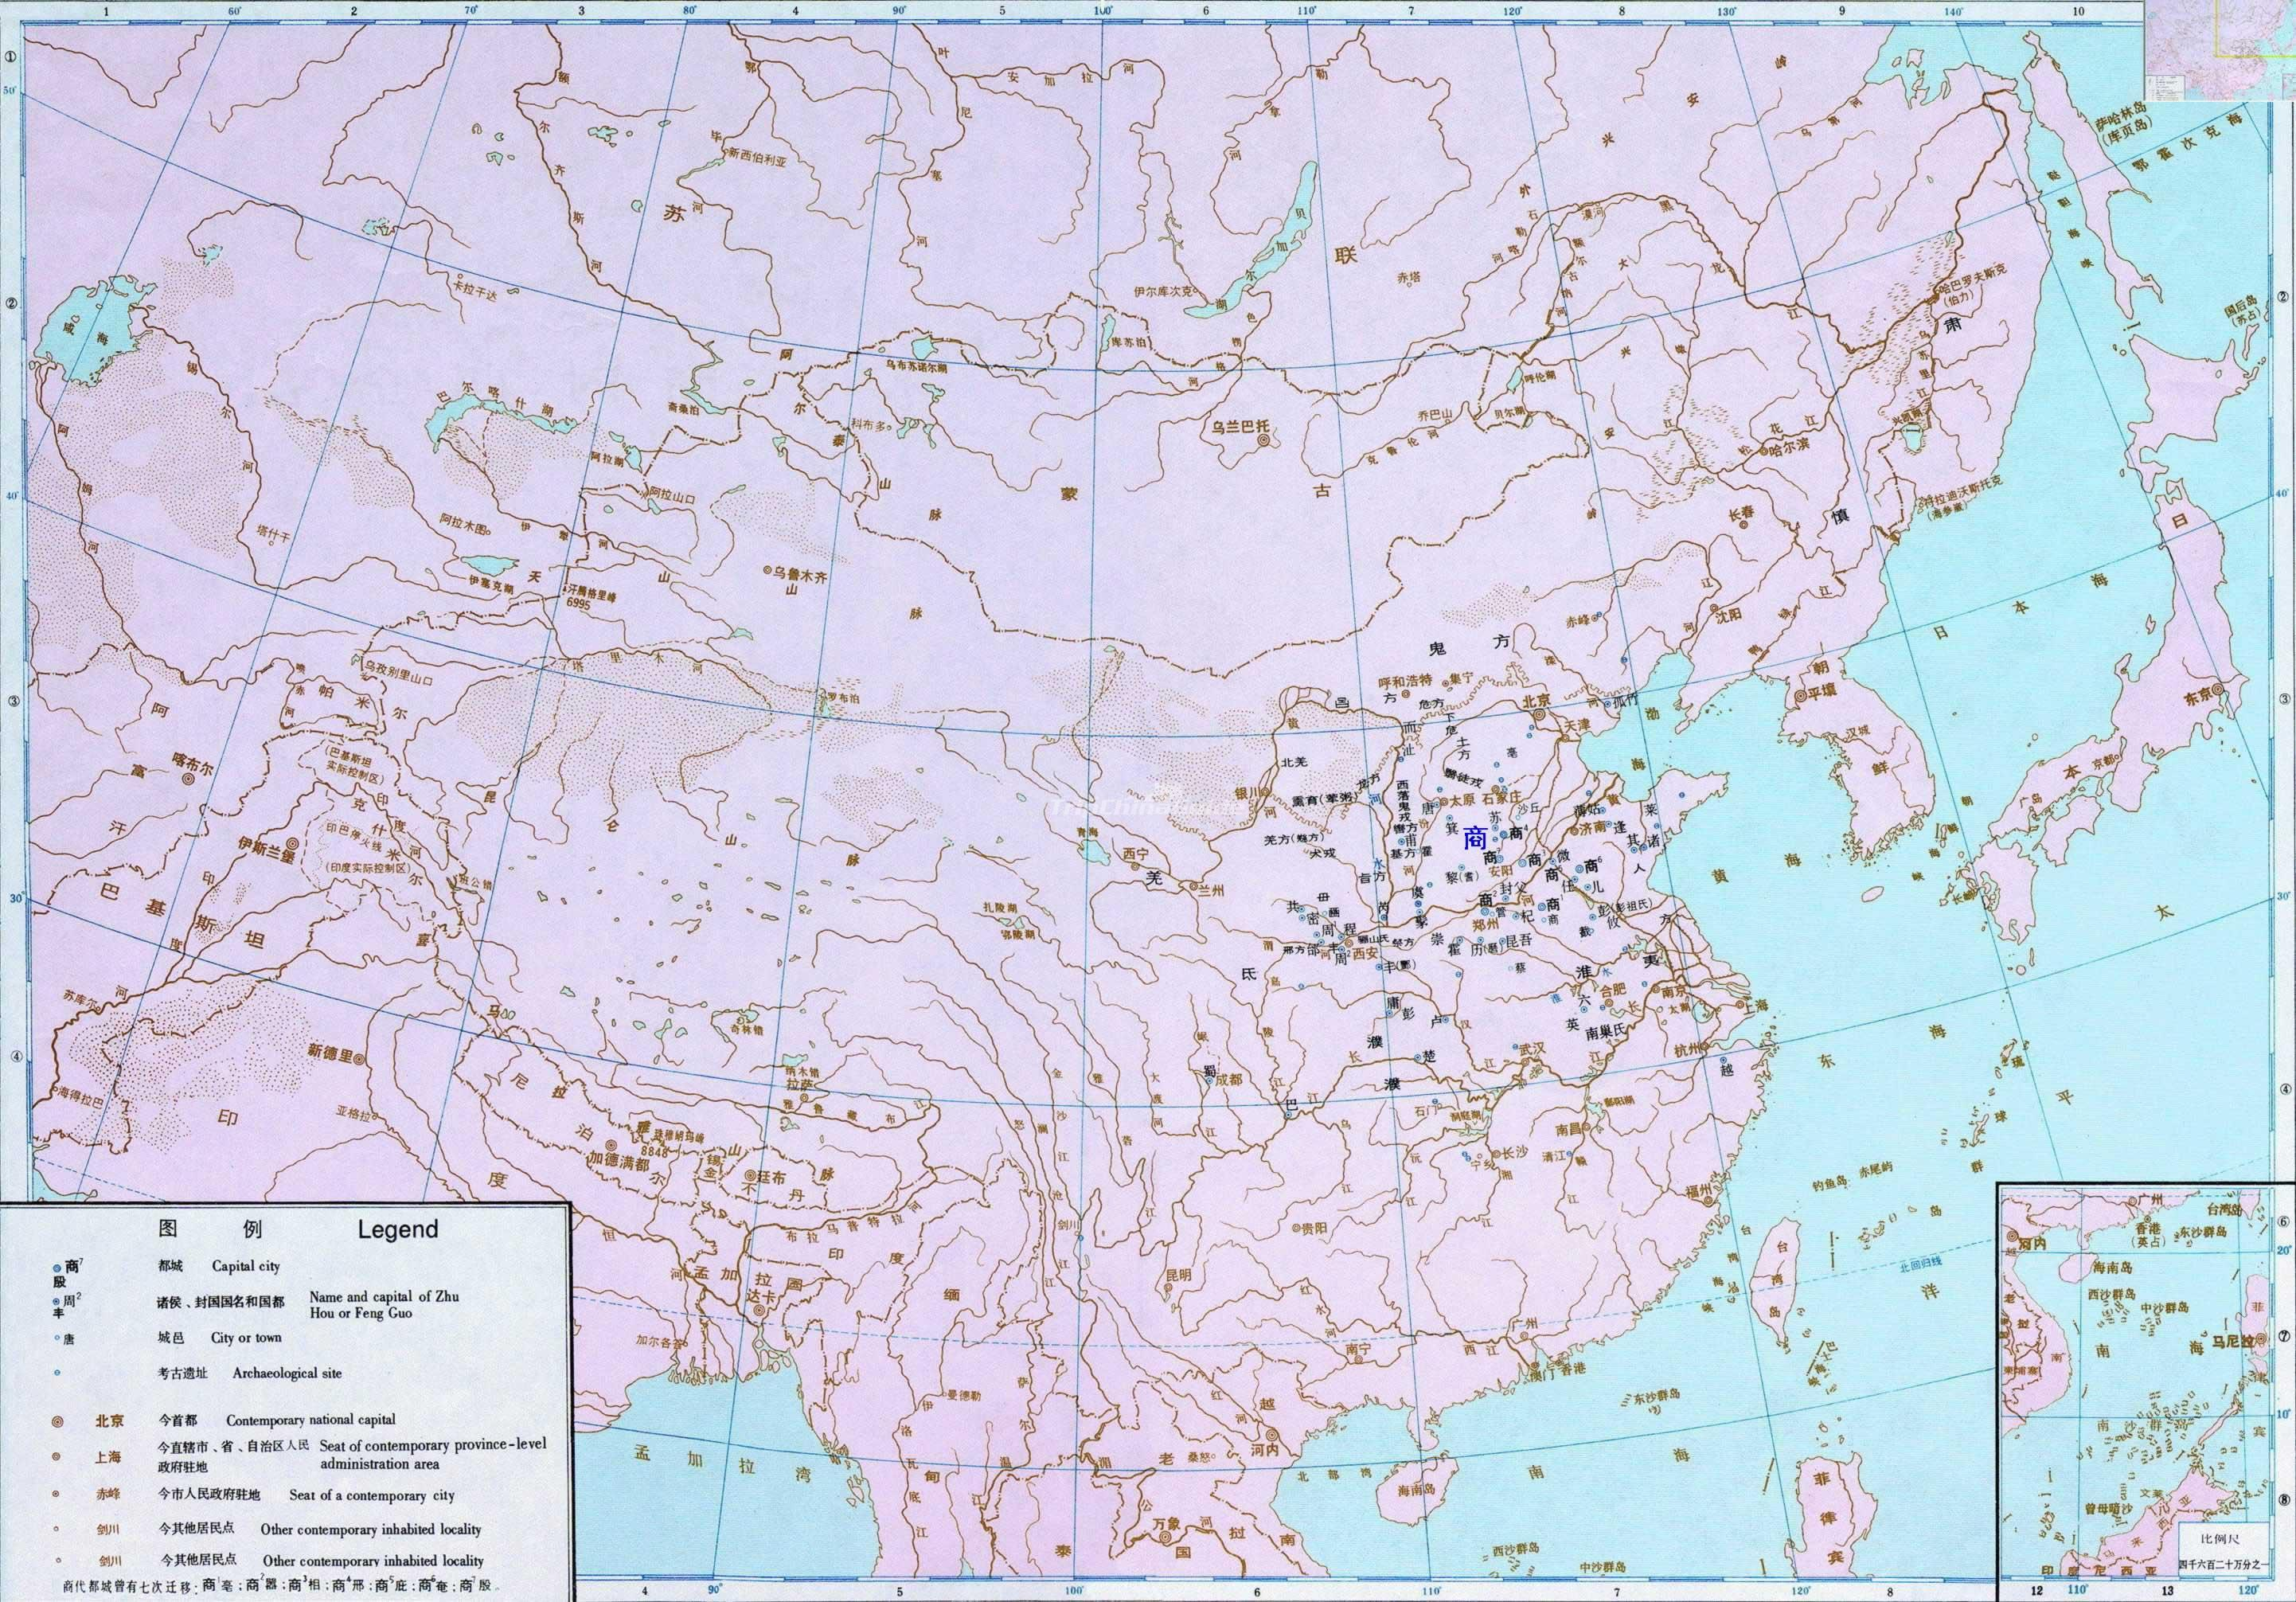 Shang Dynasty Chinese Map - Shang Dynasty Pictures, Chinese ...